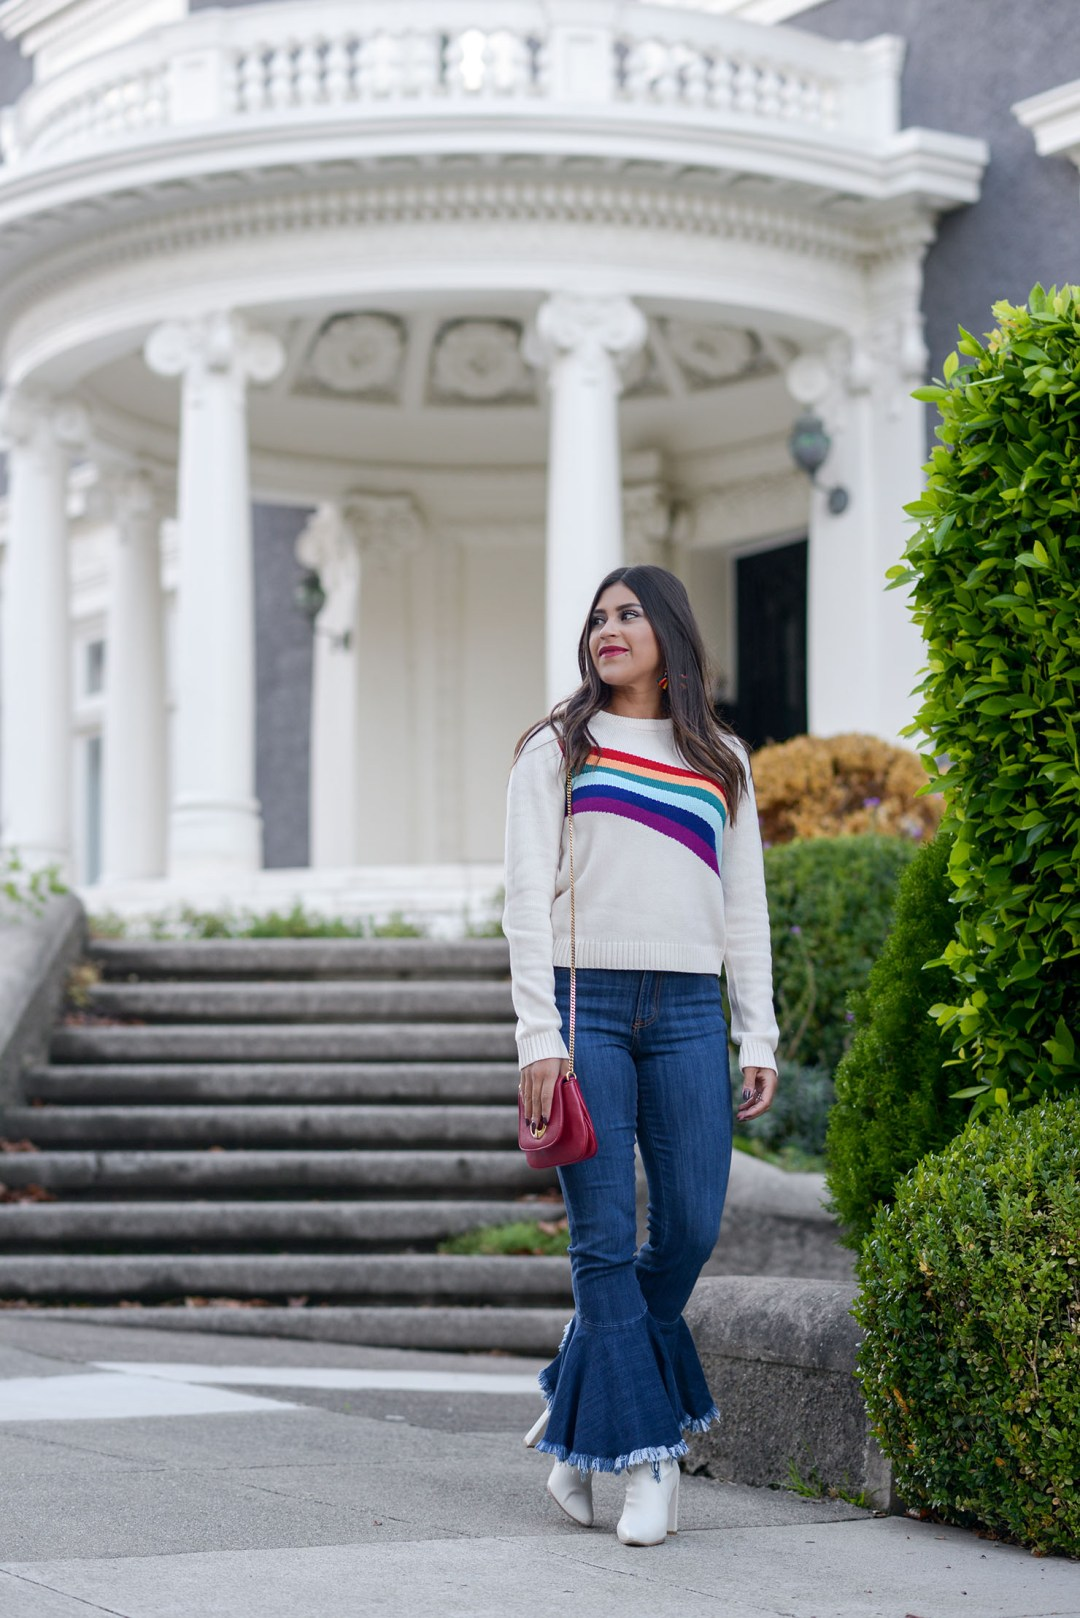 Lifestyle blogger Kelsey Kaplan of Kelsey Kaplan Fashion wearing rainbow graphic sweater and red gucci purse